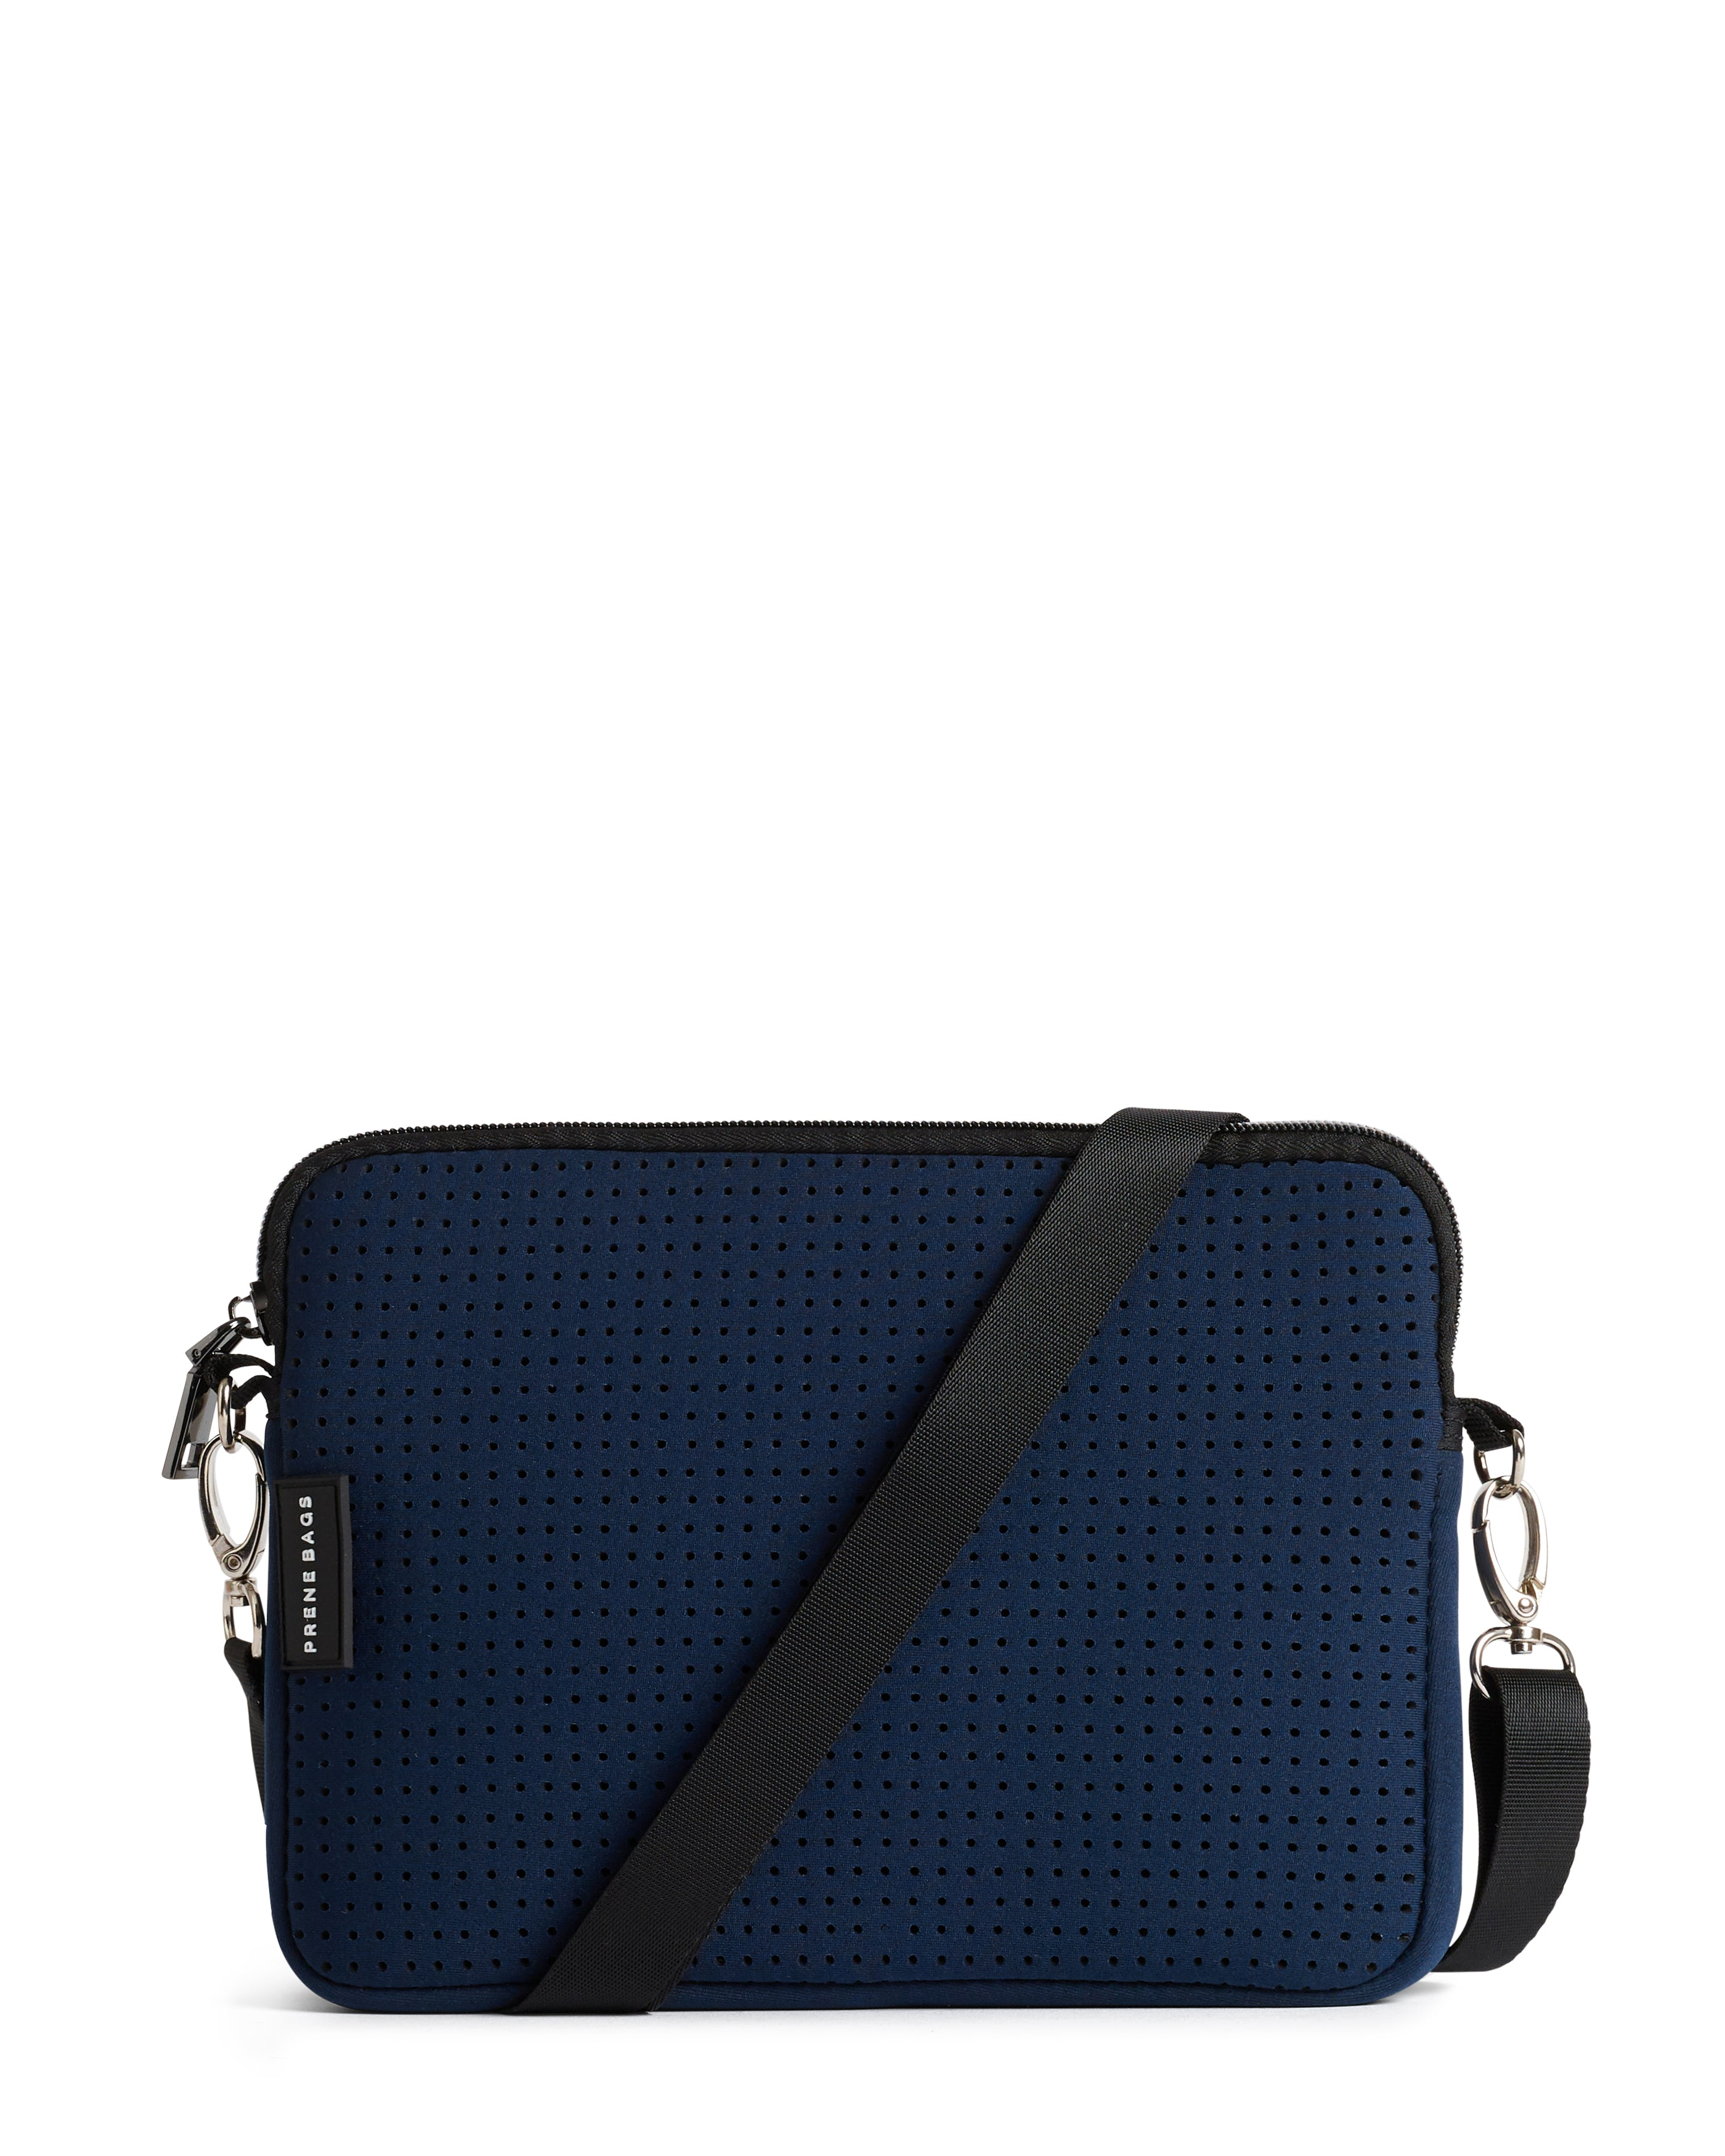 THE PIXIE BAG (NAVY BLUE)